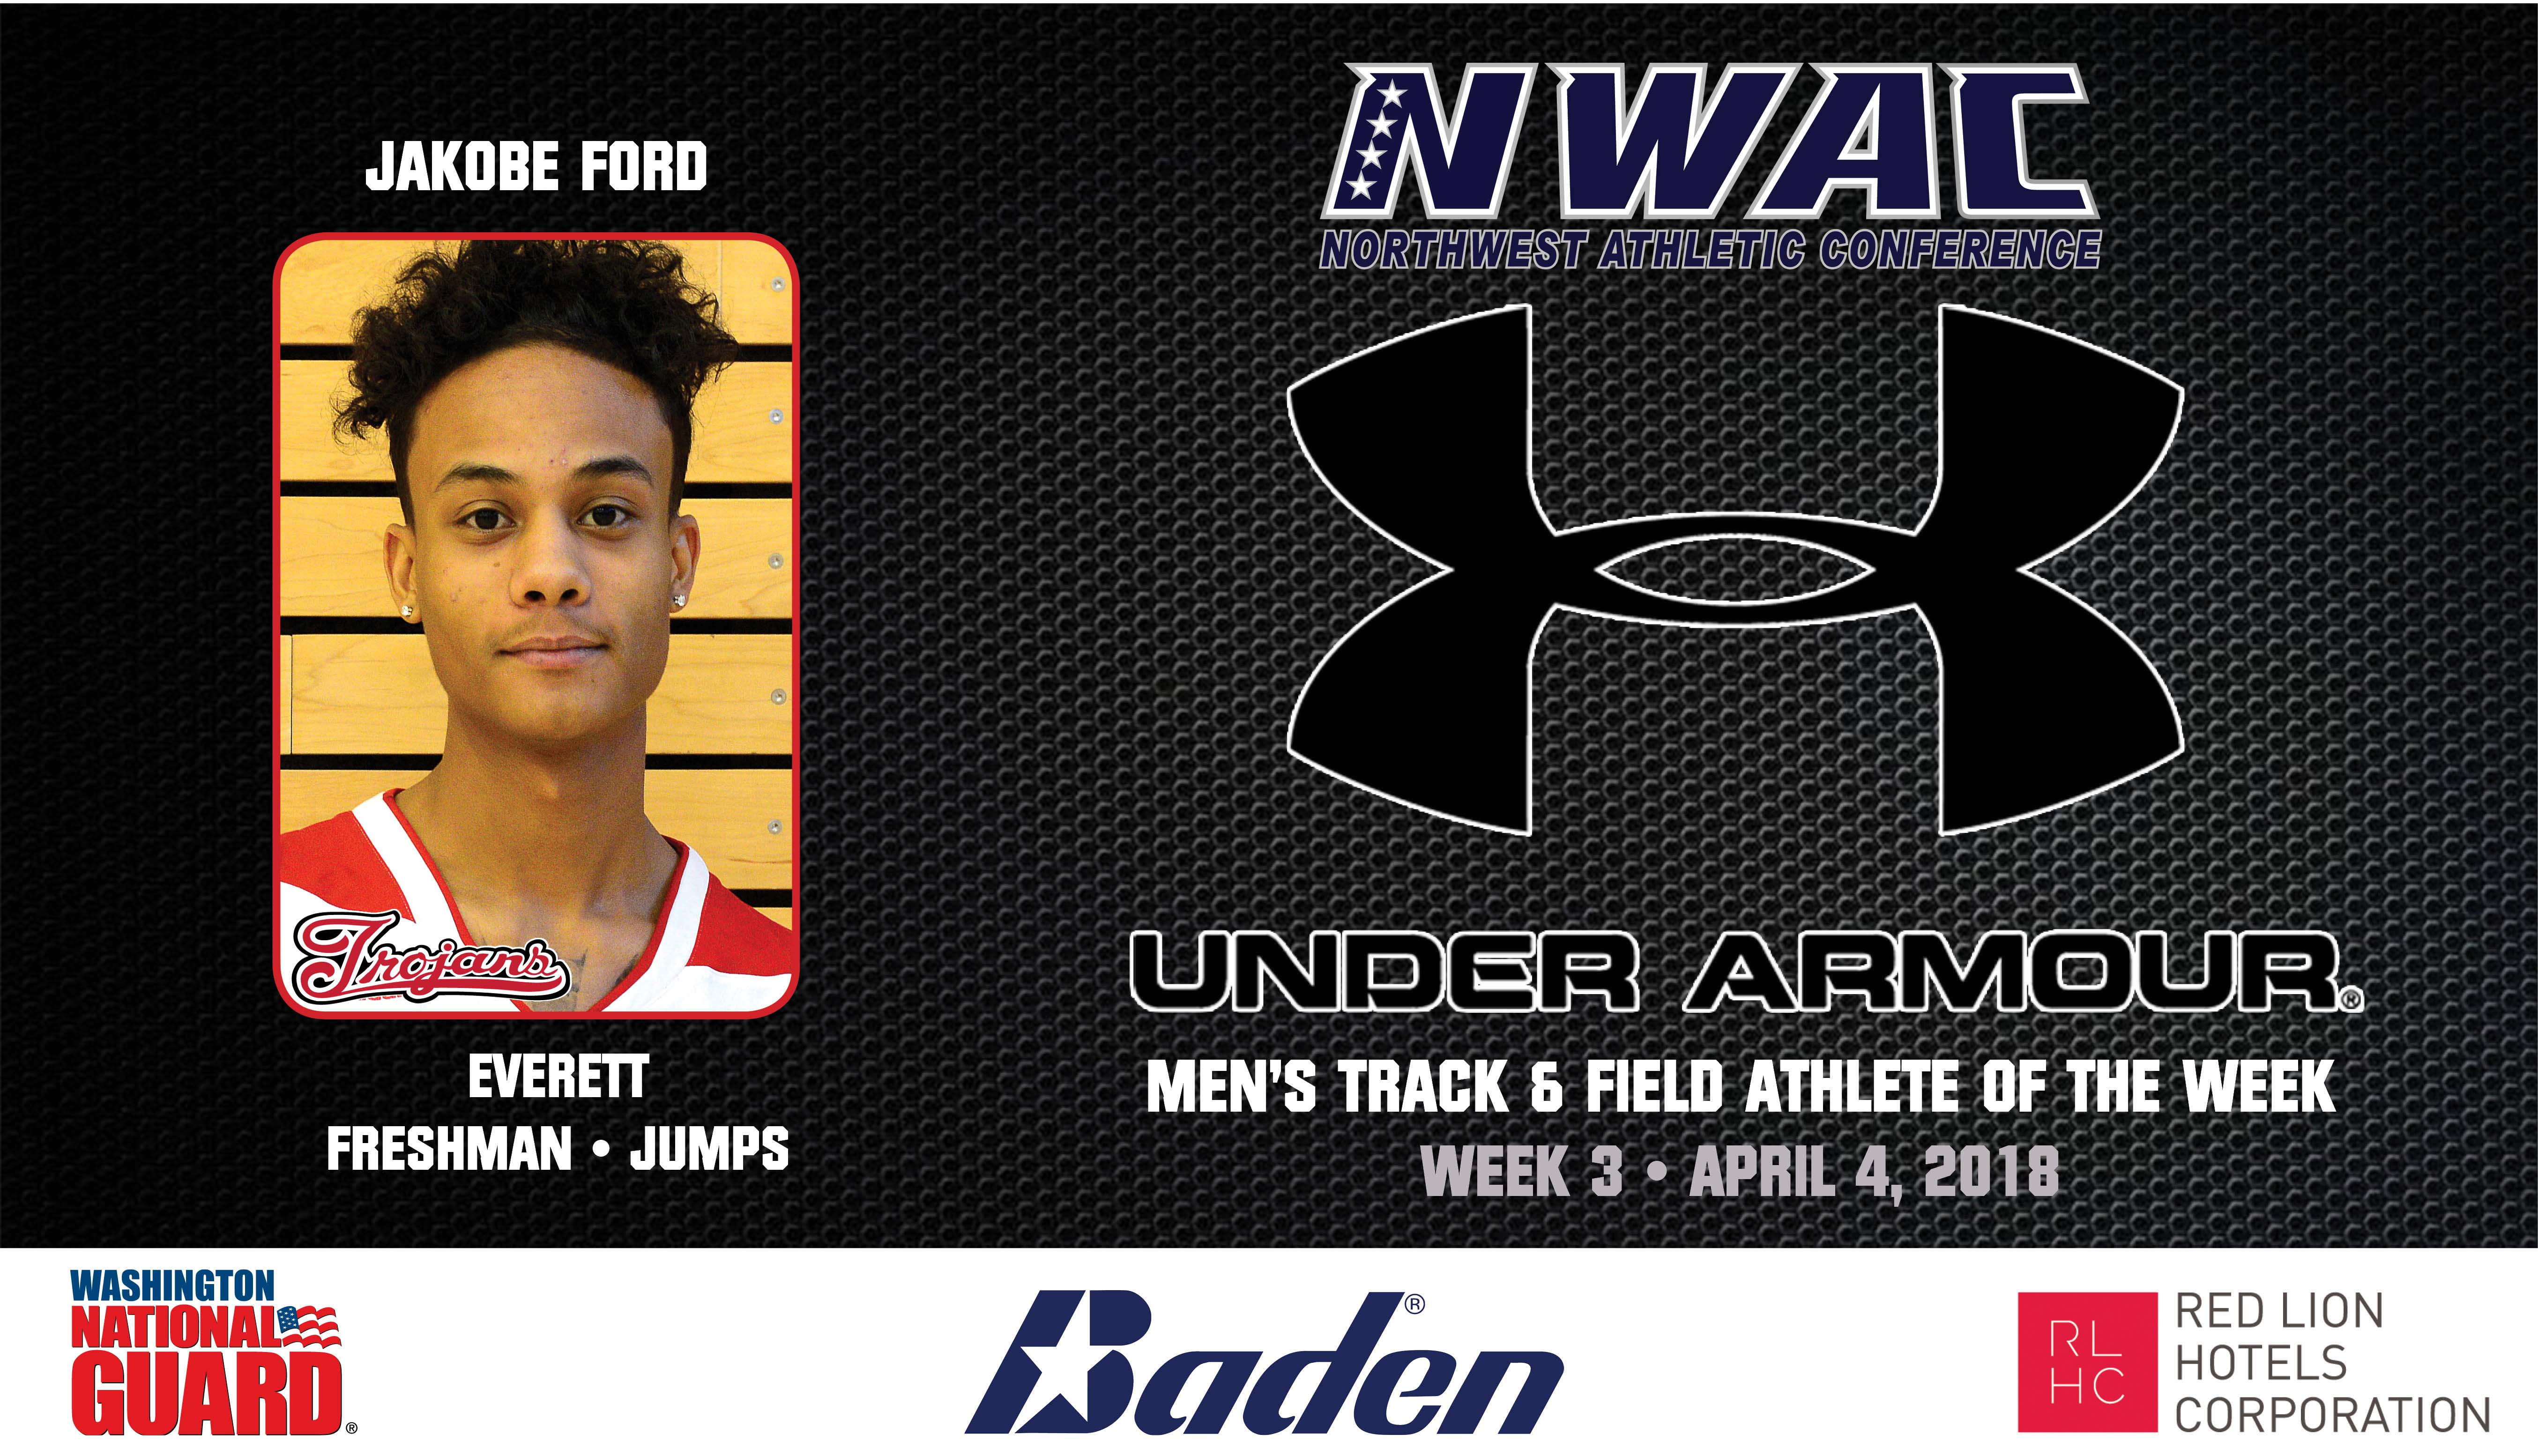 Jakobe Ford Under Armour image